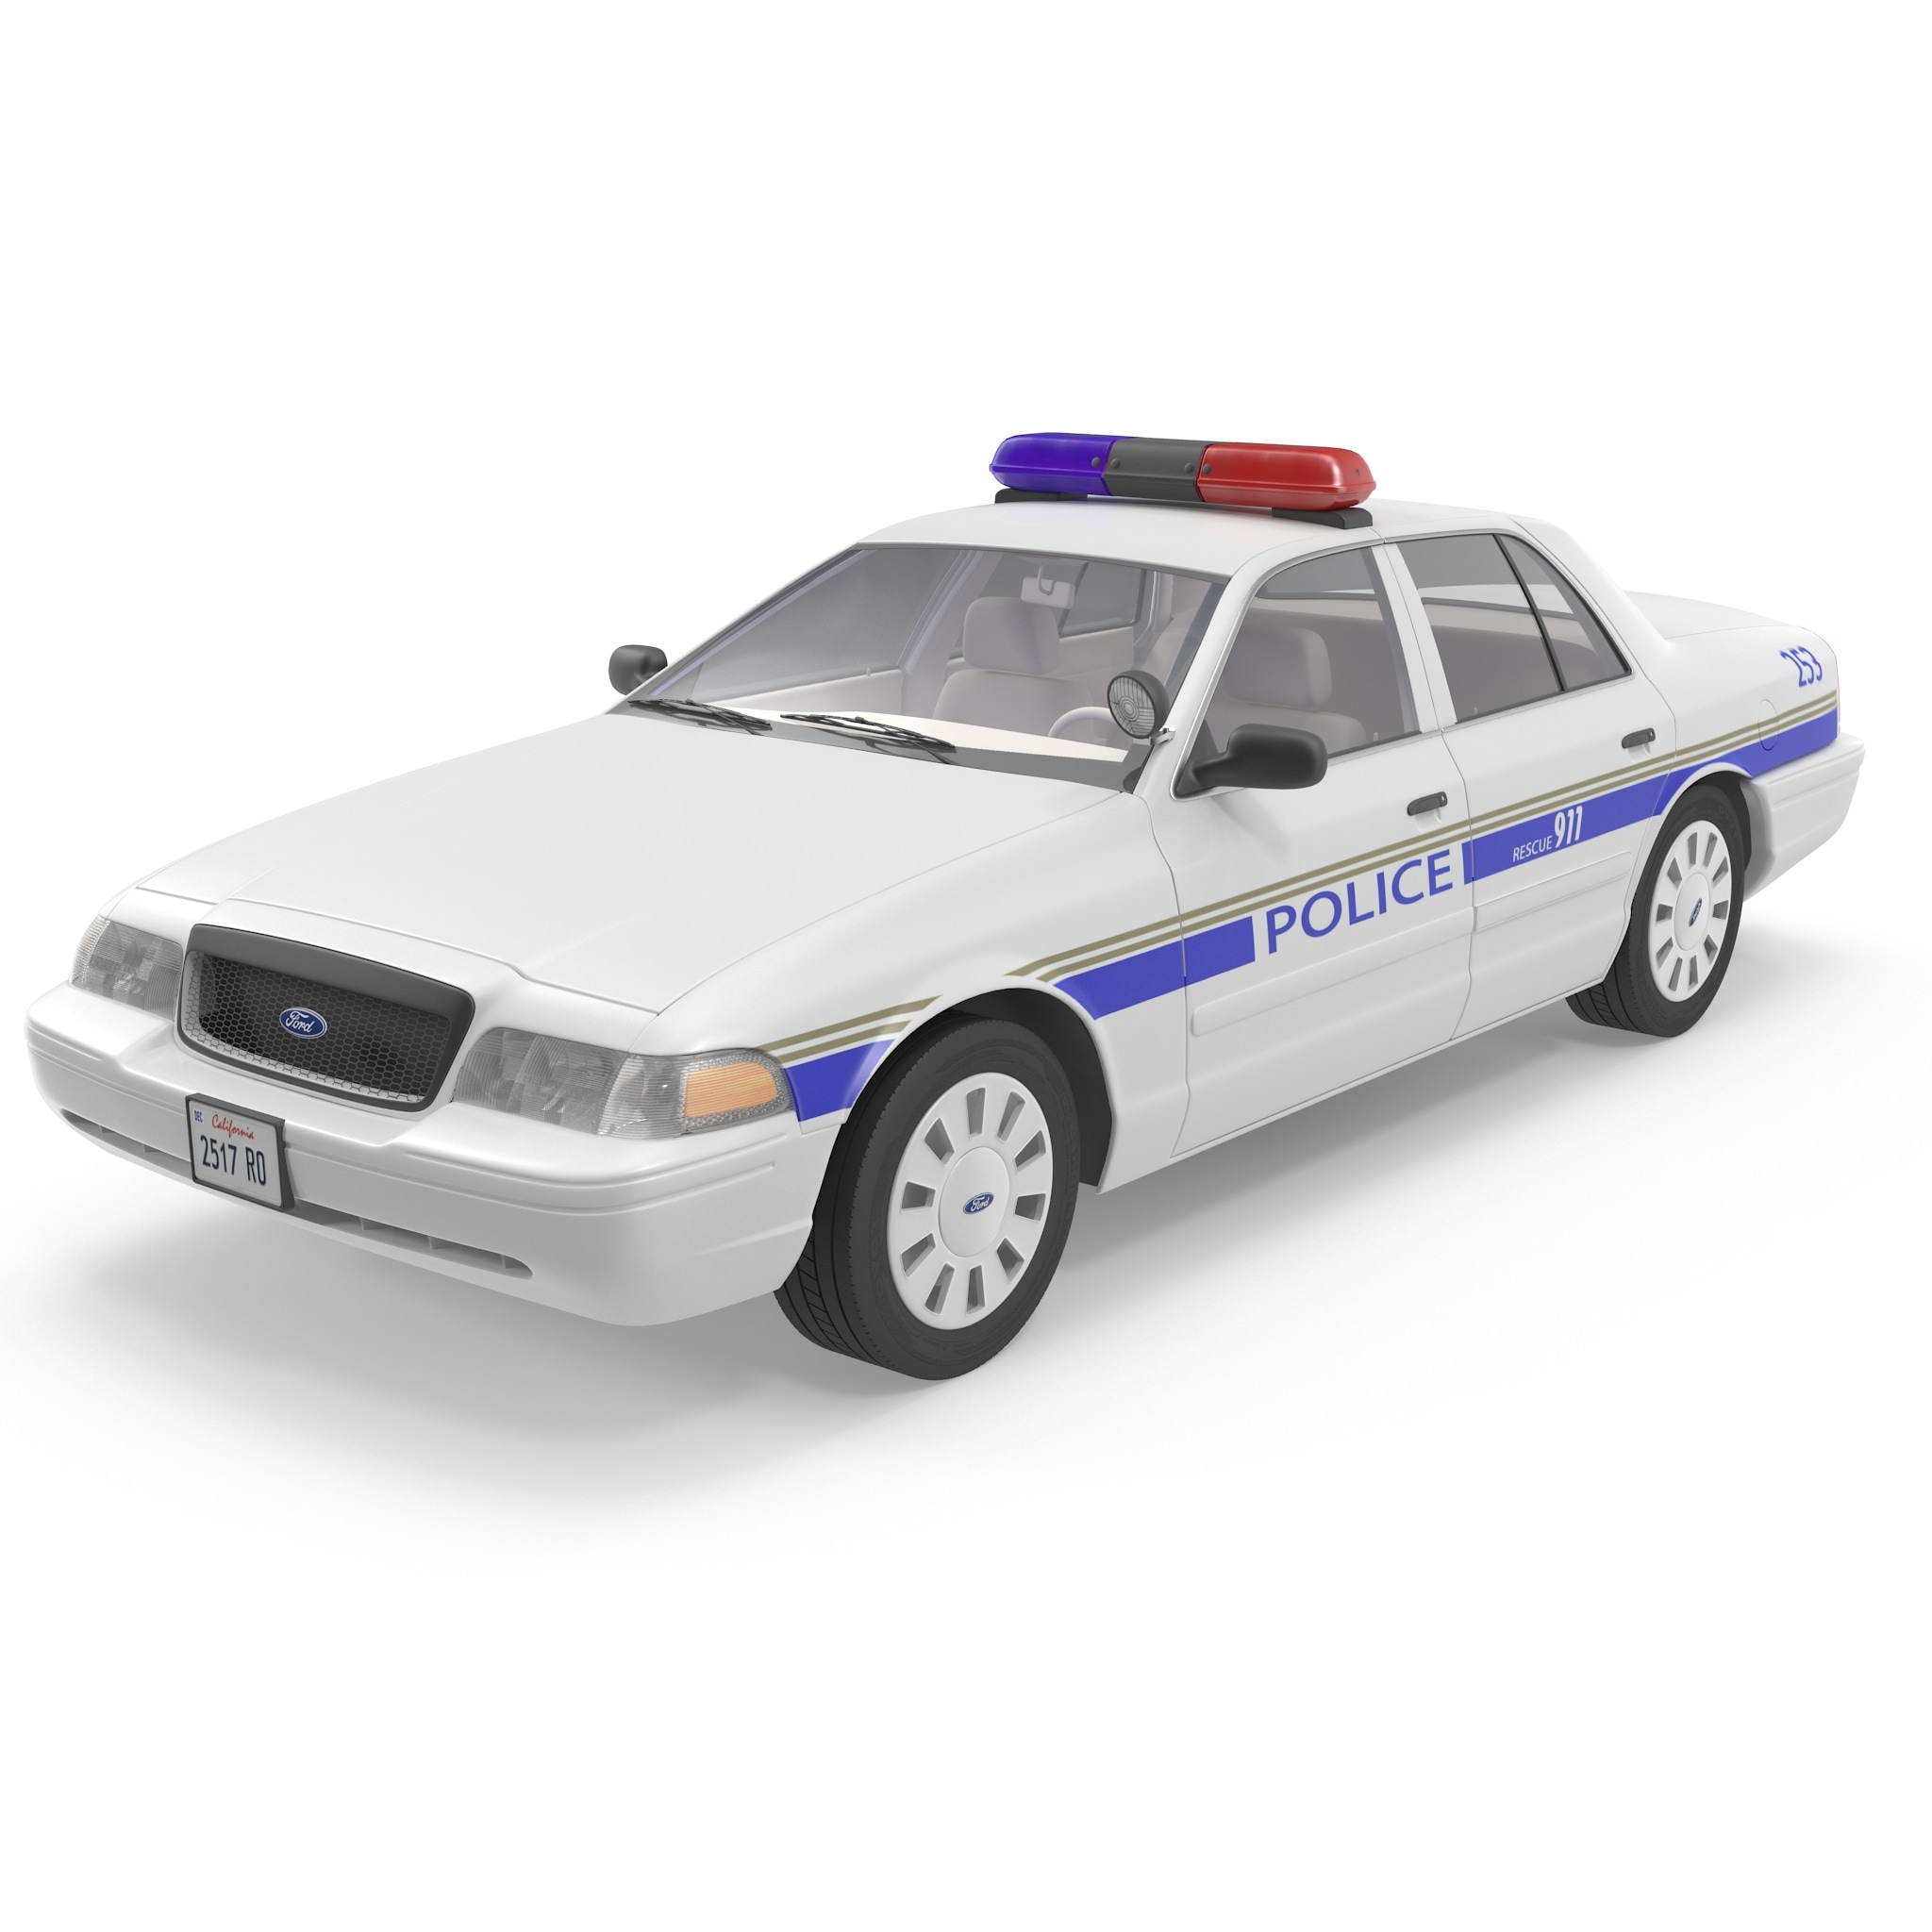 Crown_Victoria_Police_Car_Beauty_0002.jpg